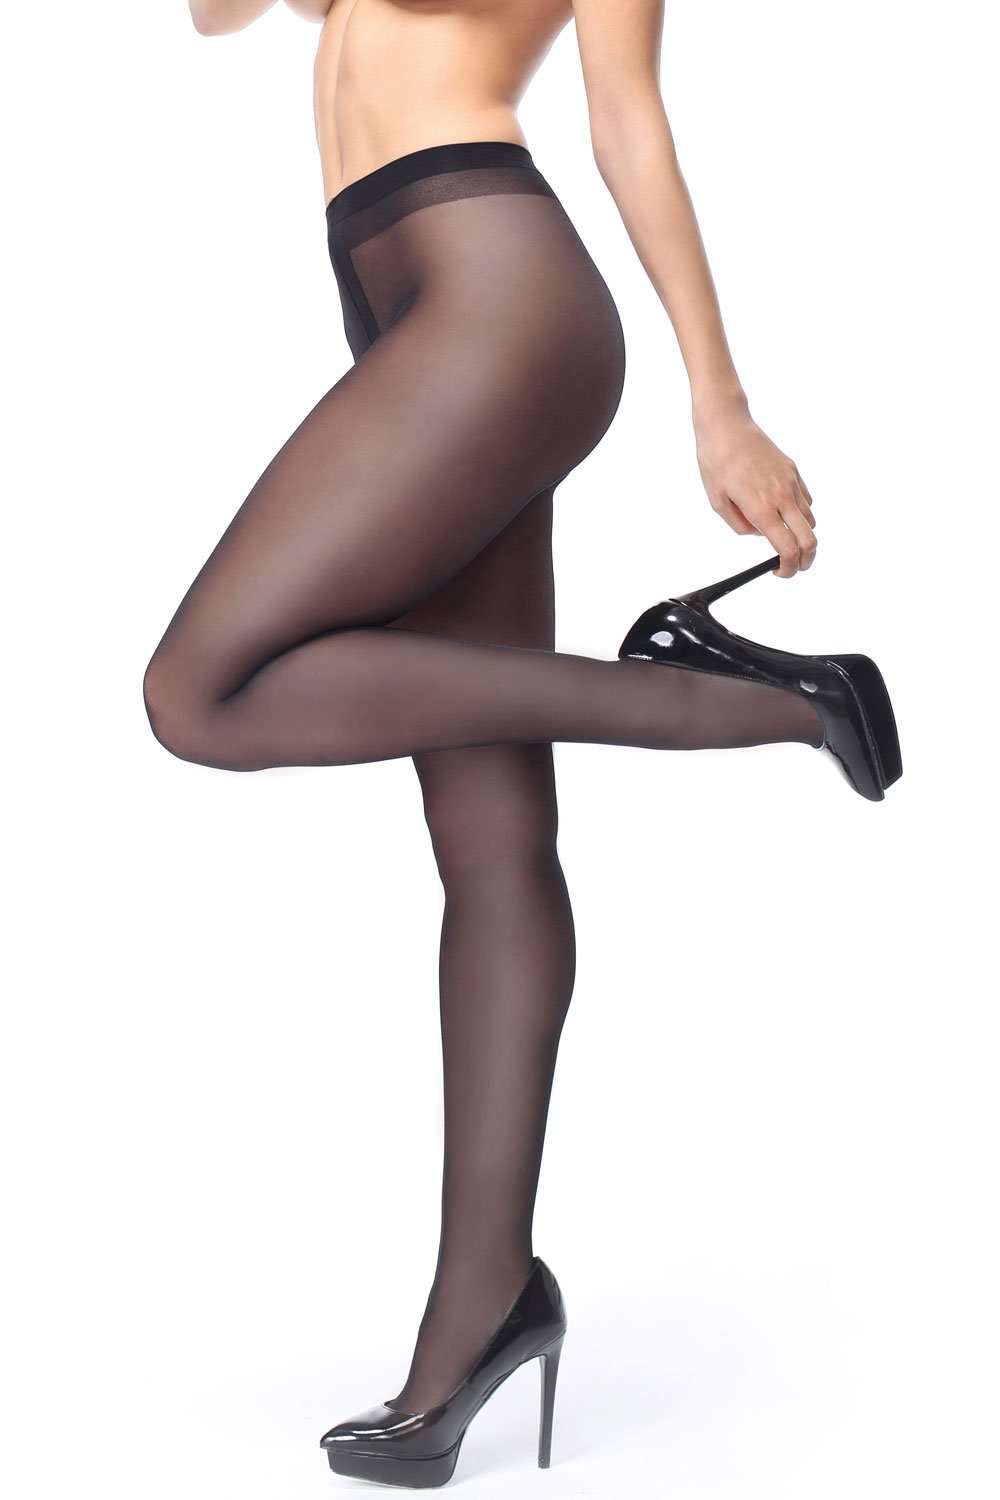 missO Black Tights - Sheer Tights - Naughty Knickers